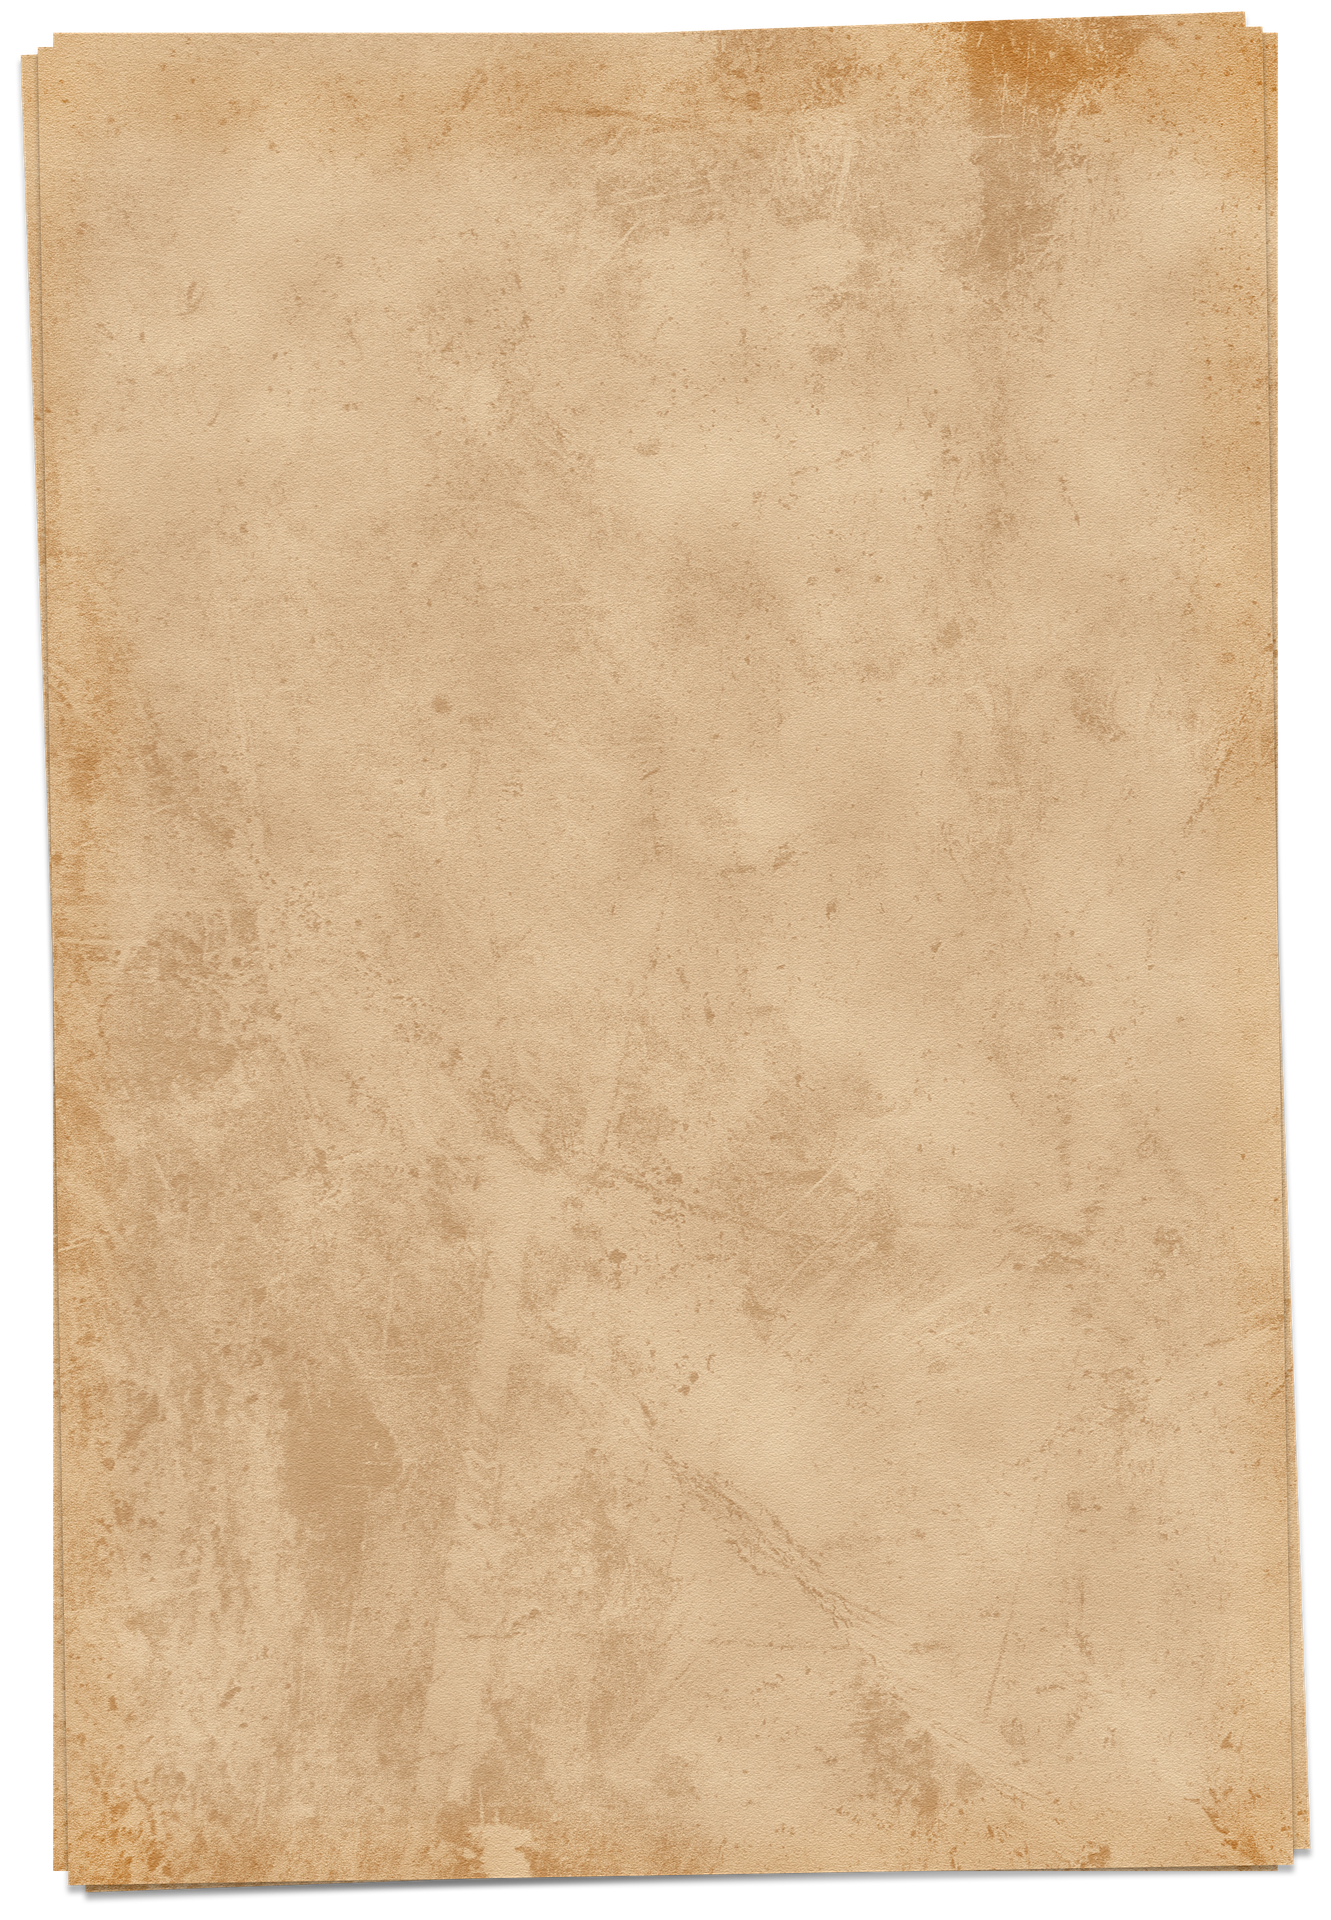 stack-of-paper-1058406_1920.png